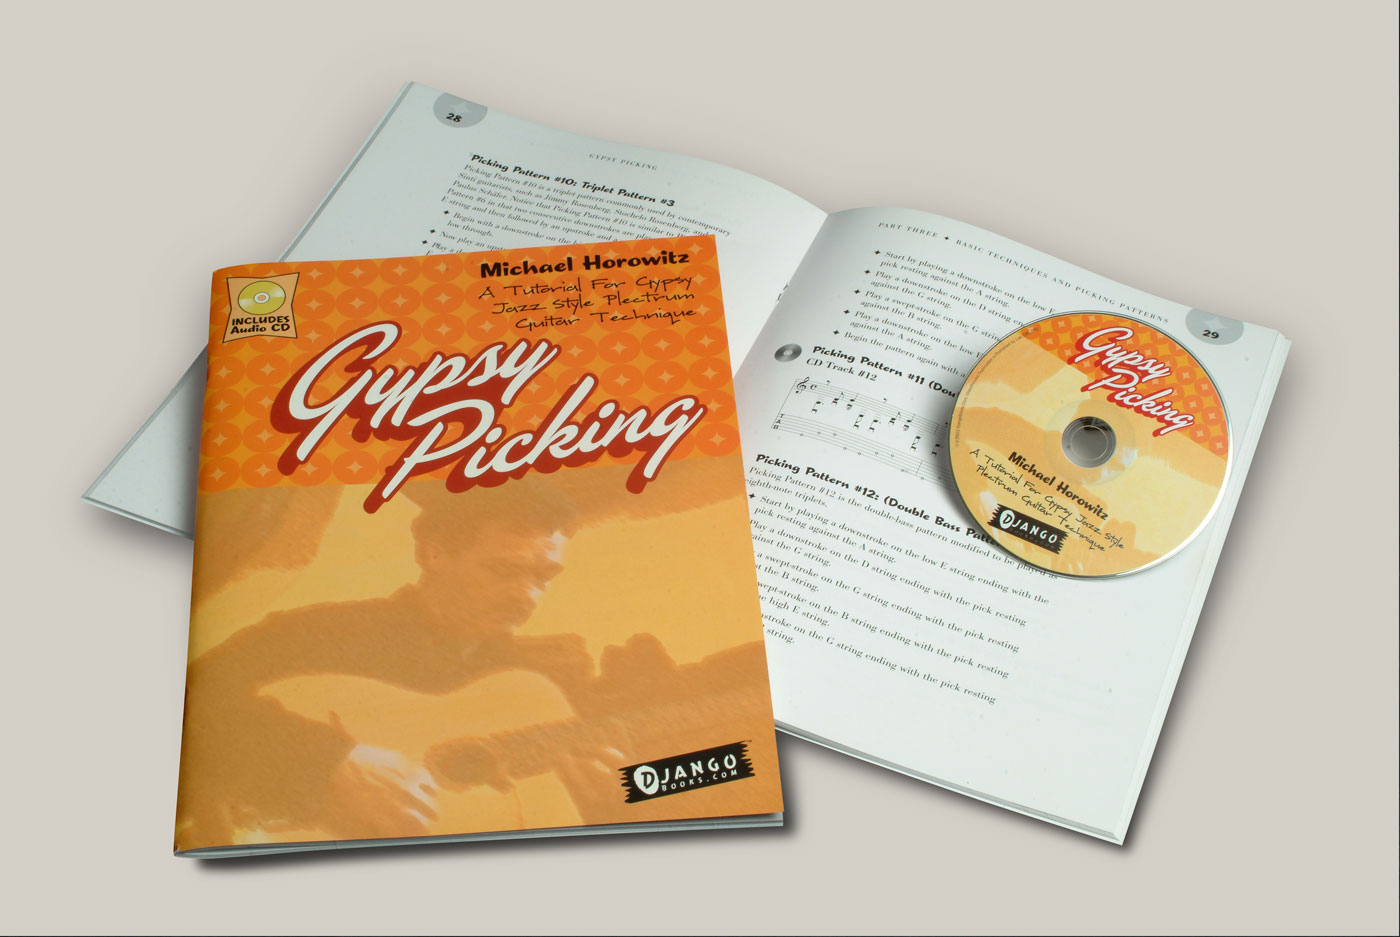 gypsy_picking_book_cd